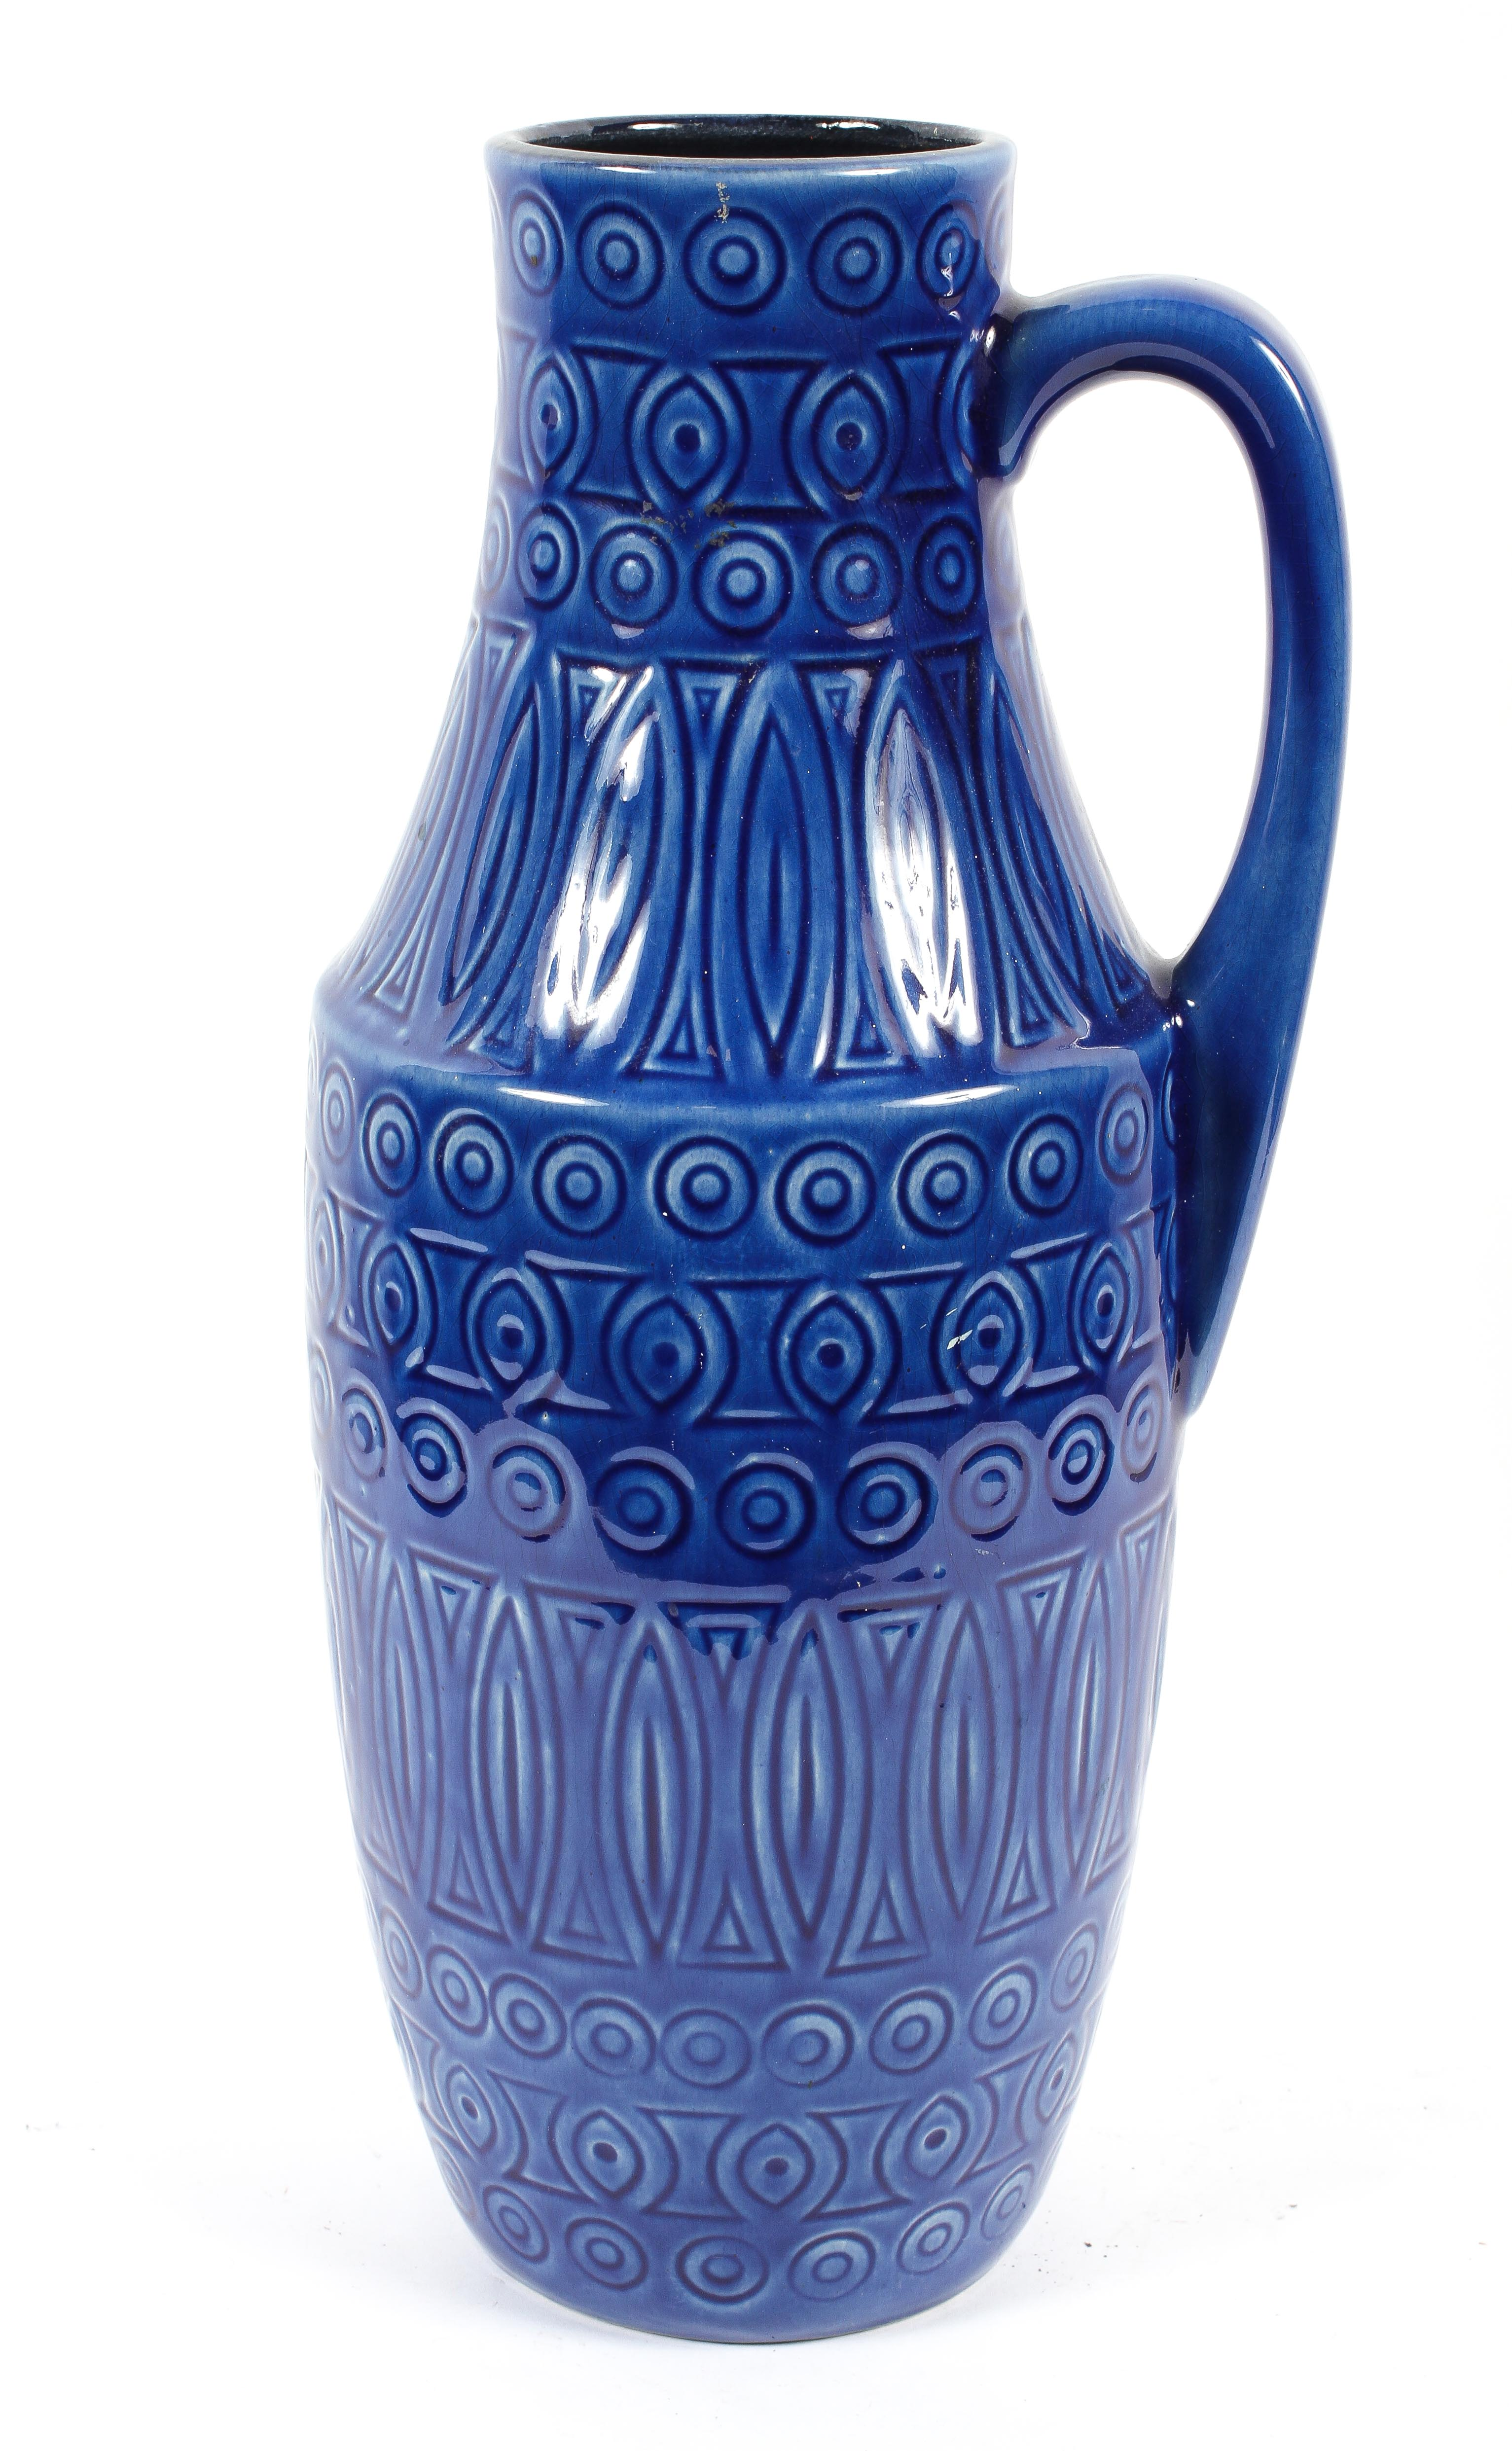 A West German pottery vase, circa 1960, numbered 423-47,